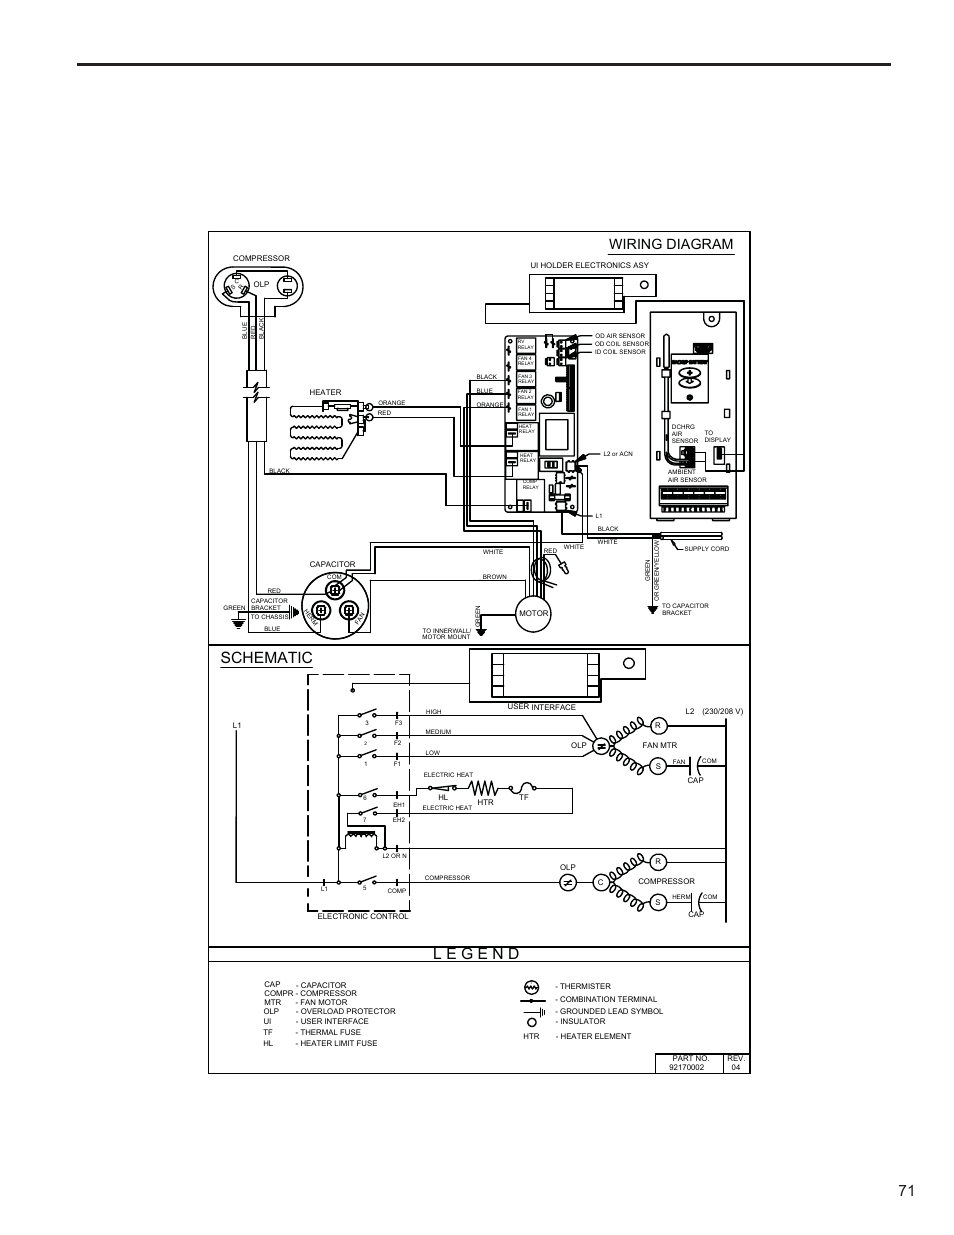 medium resolution of schematic wiring diagram friedrich kuhl r 410a user manual page 72 87